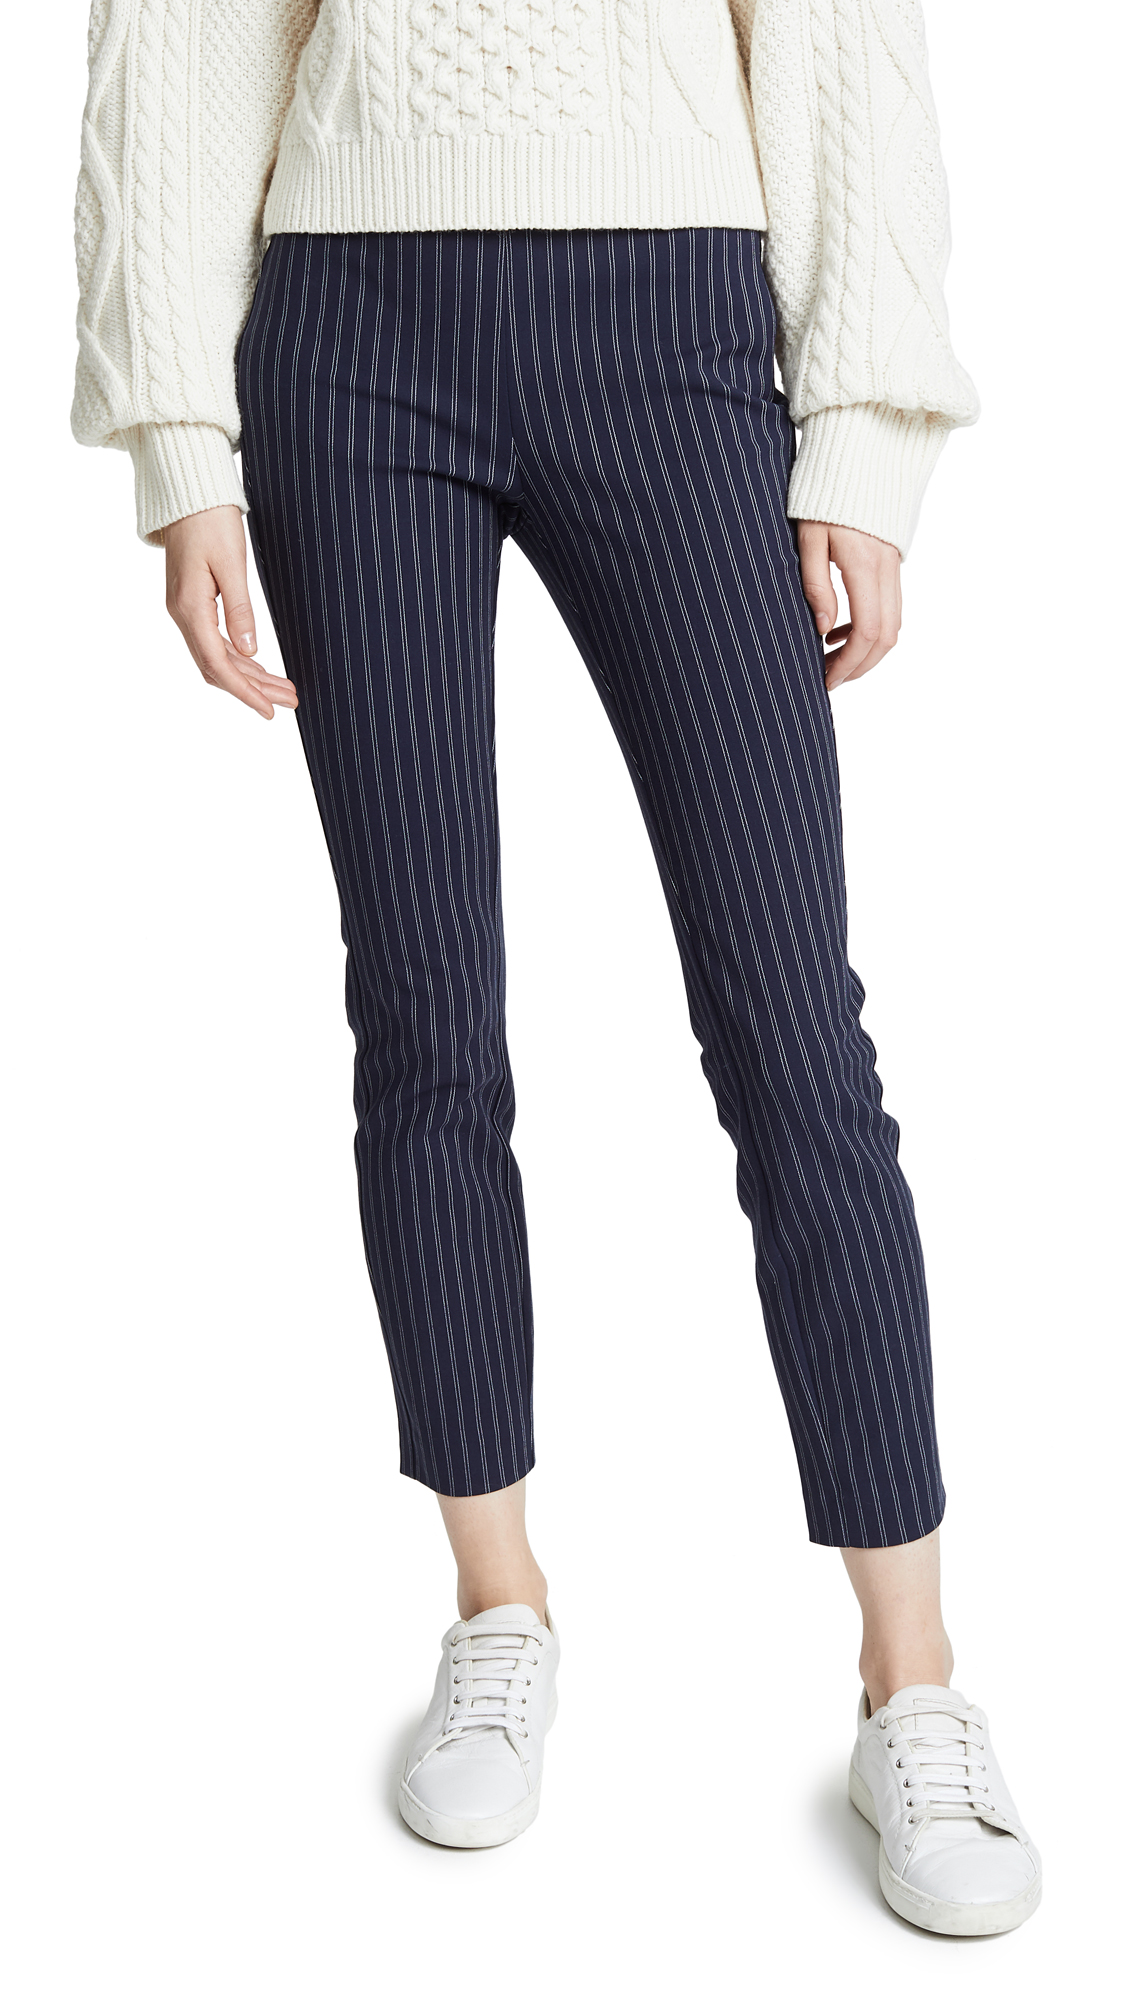 Rag & Bone Simon Pants With Yoke In Navy/White